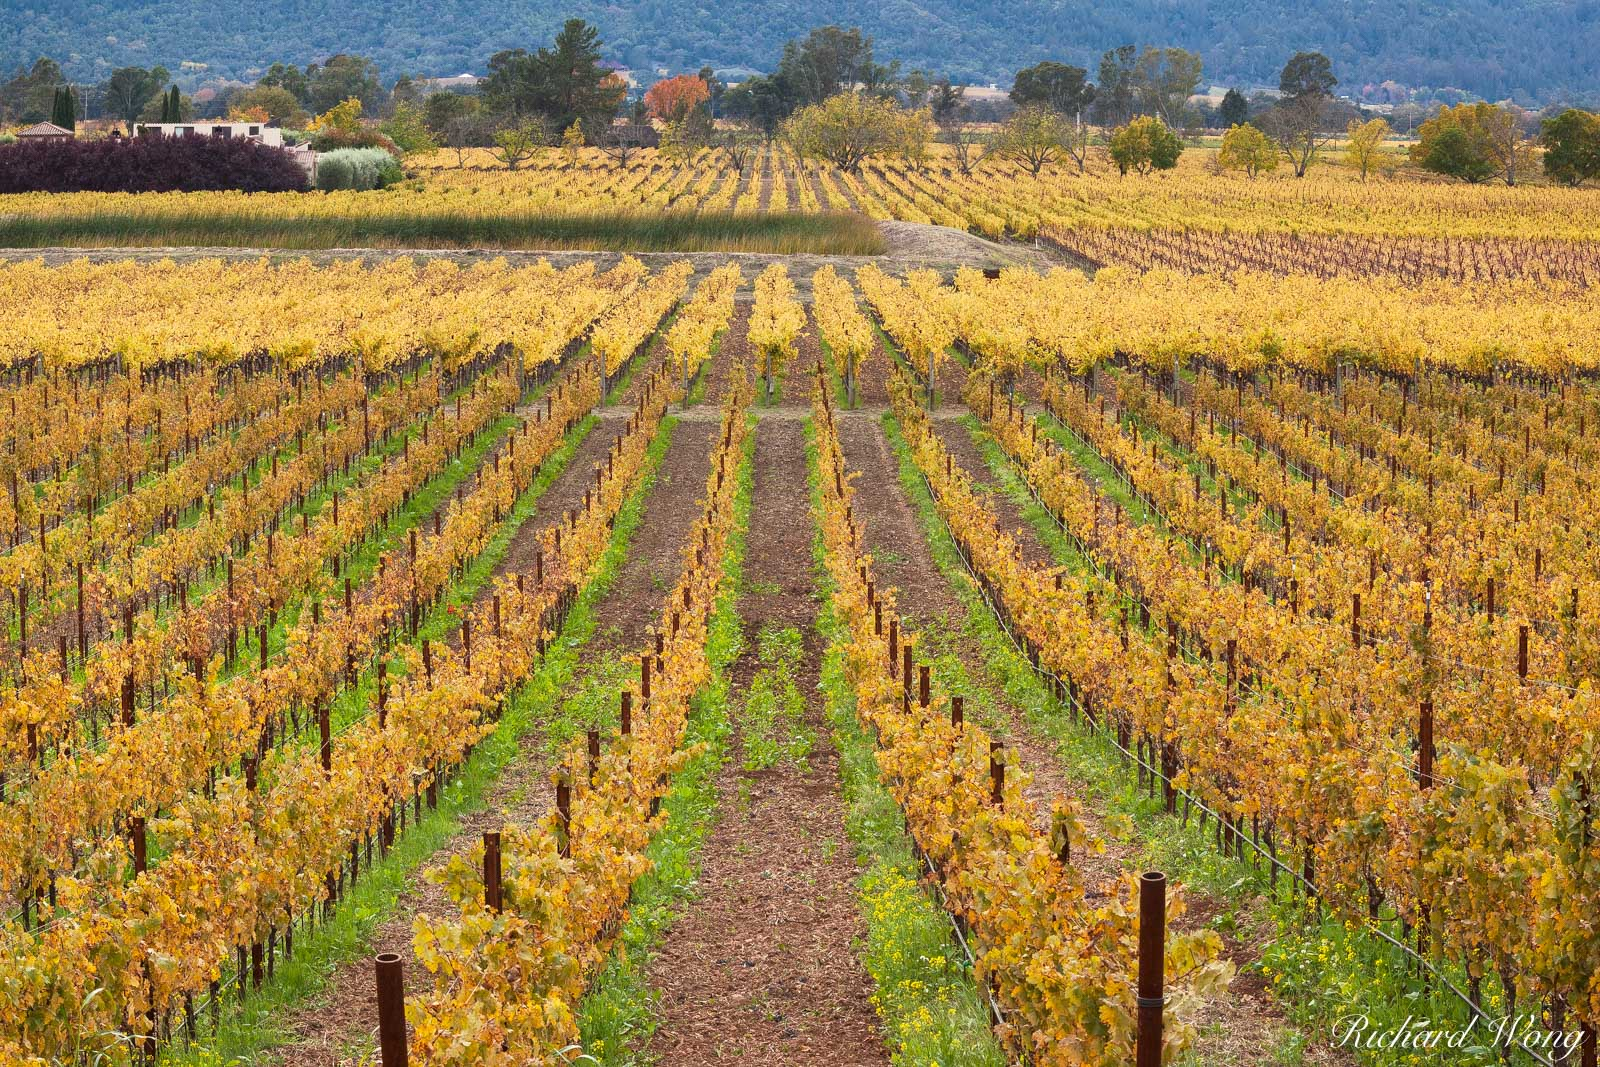 Silverado Trail Scenic Vineyard Landscape During Fall Season, Napa Valley, California, photo, photo